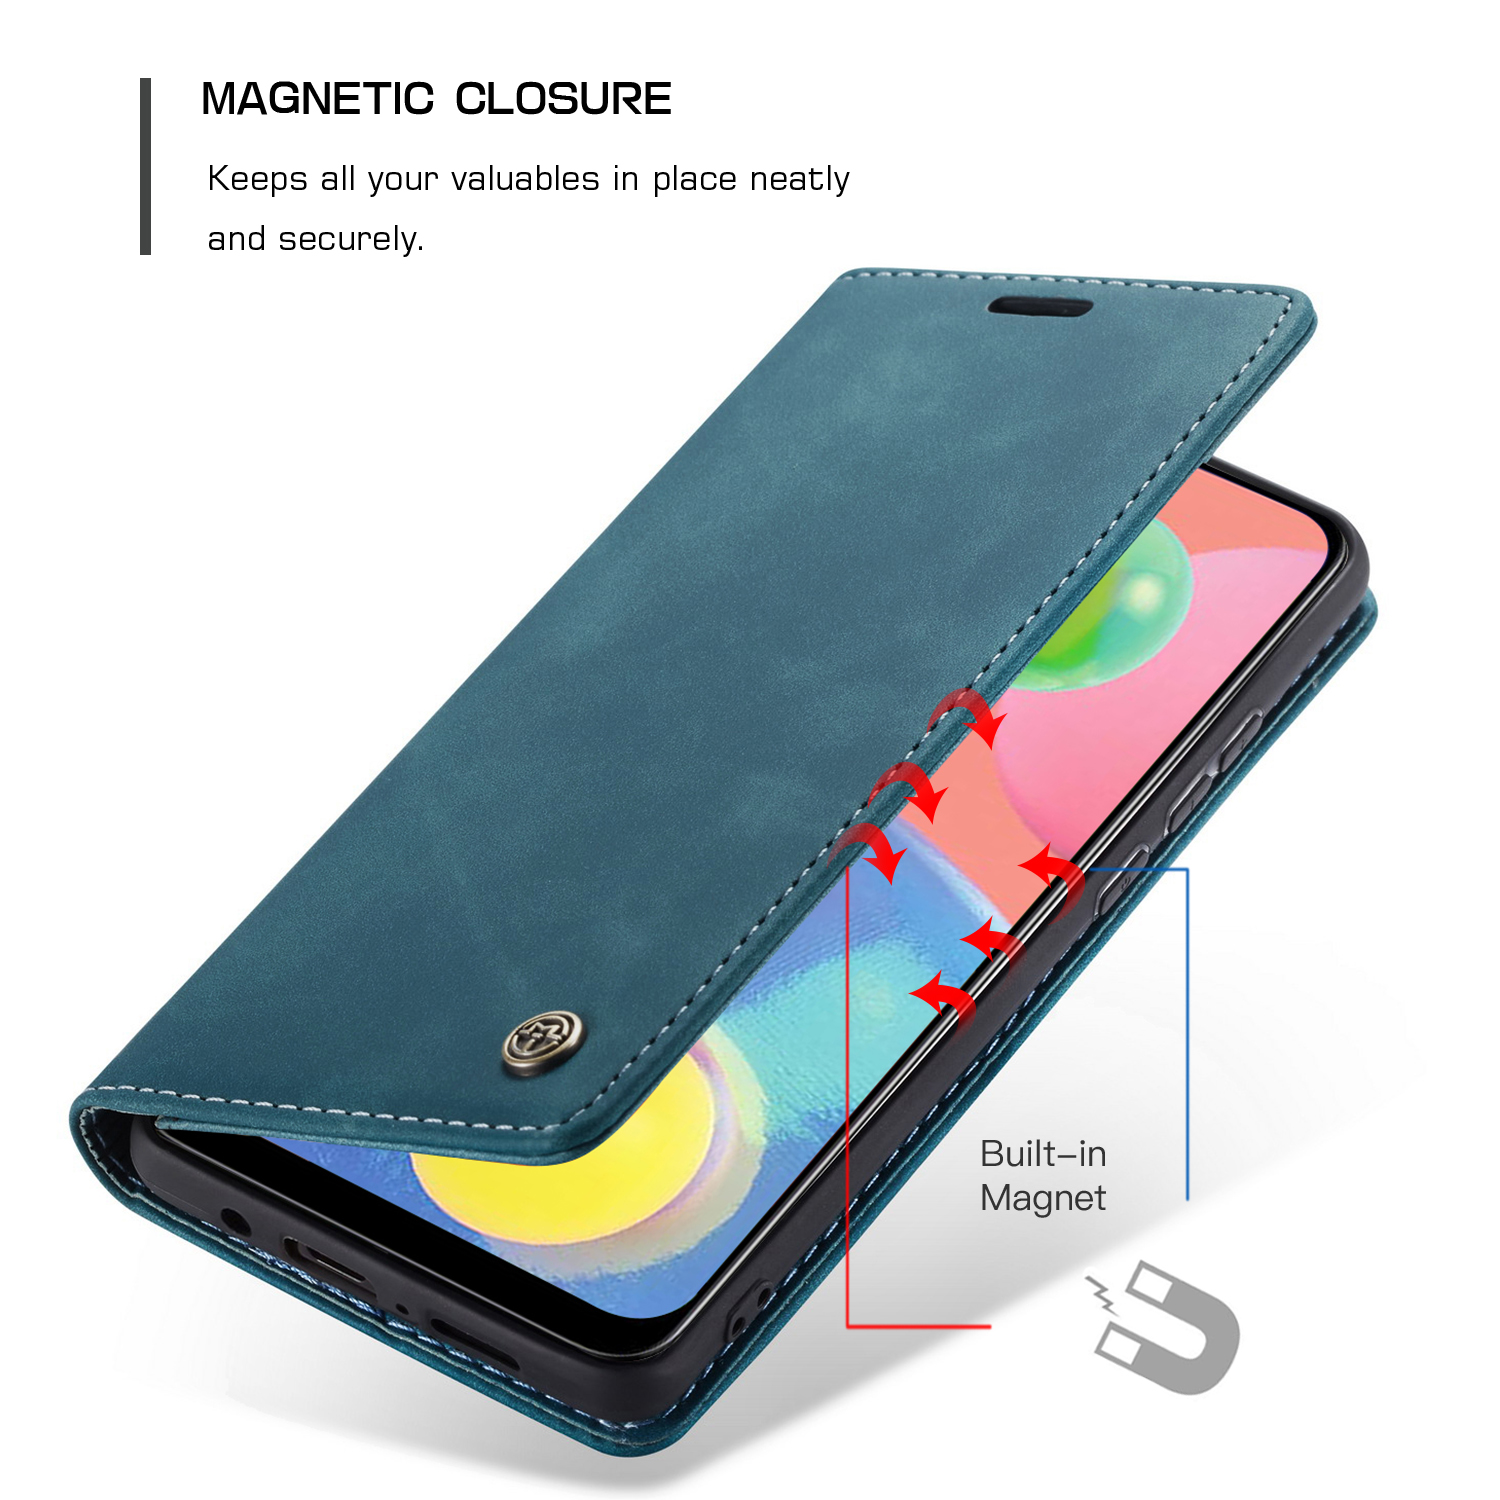 CaseMe Leather Case For Samsung Galaxy A51 A71 A91 A21S A31 A41 A80 A10S A20 A20E A20S A30 A30S A40 A40S A50 A50S A70 A70S Cover